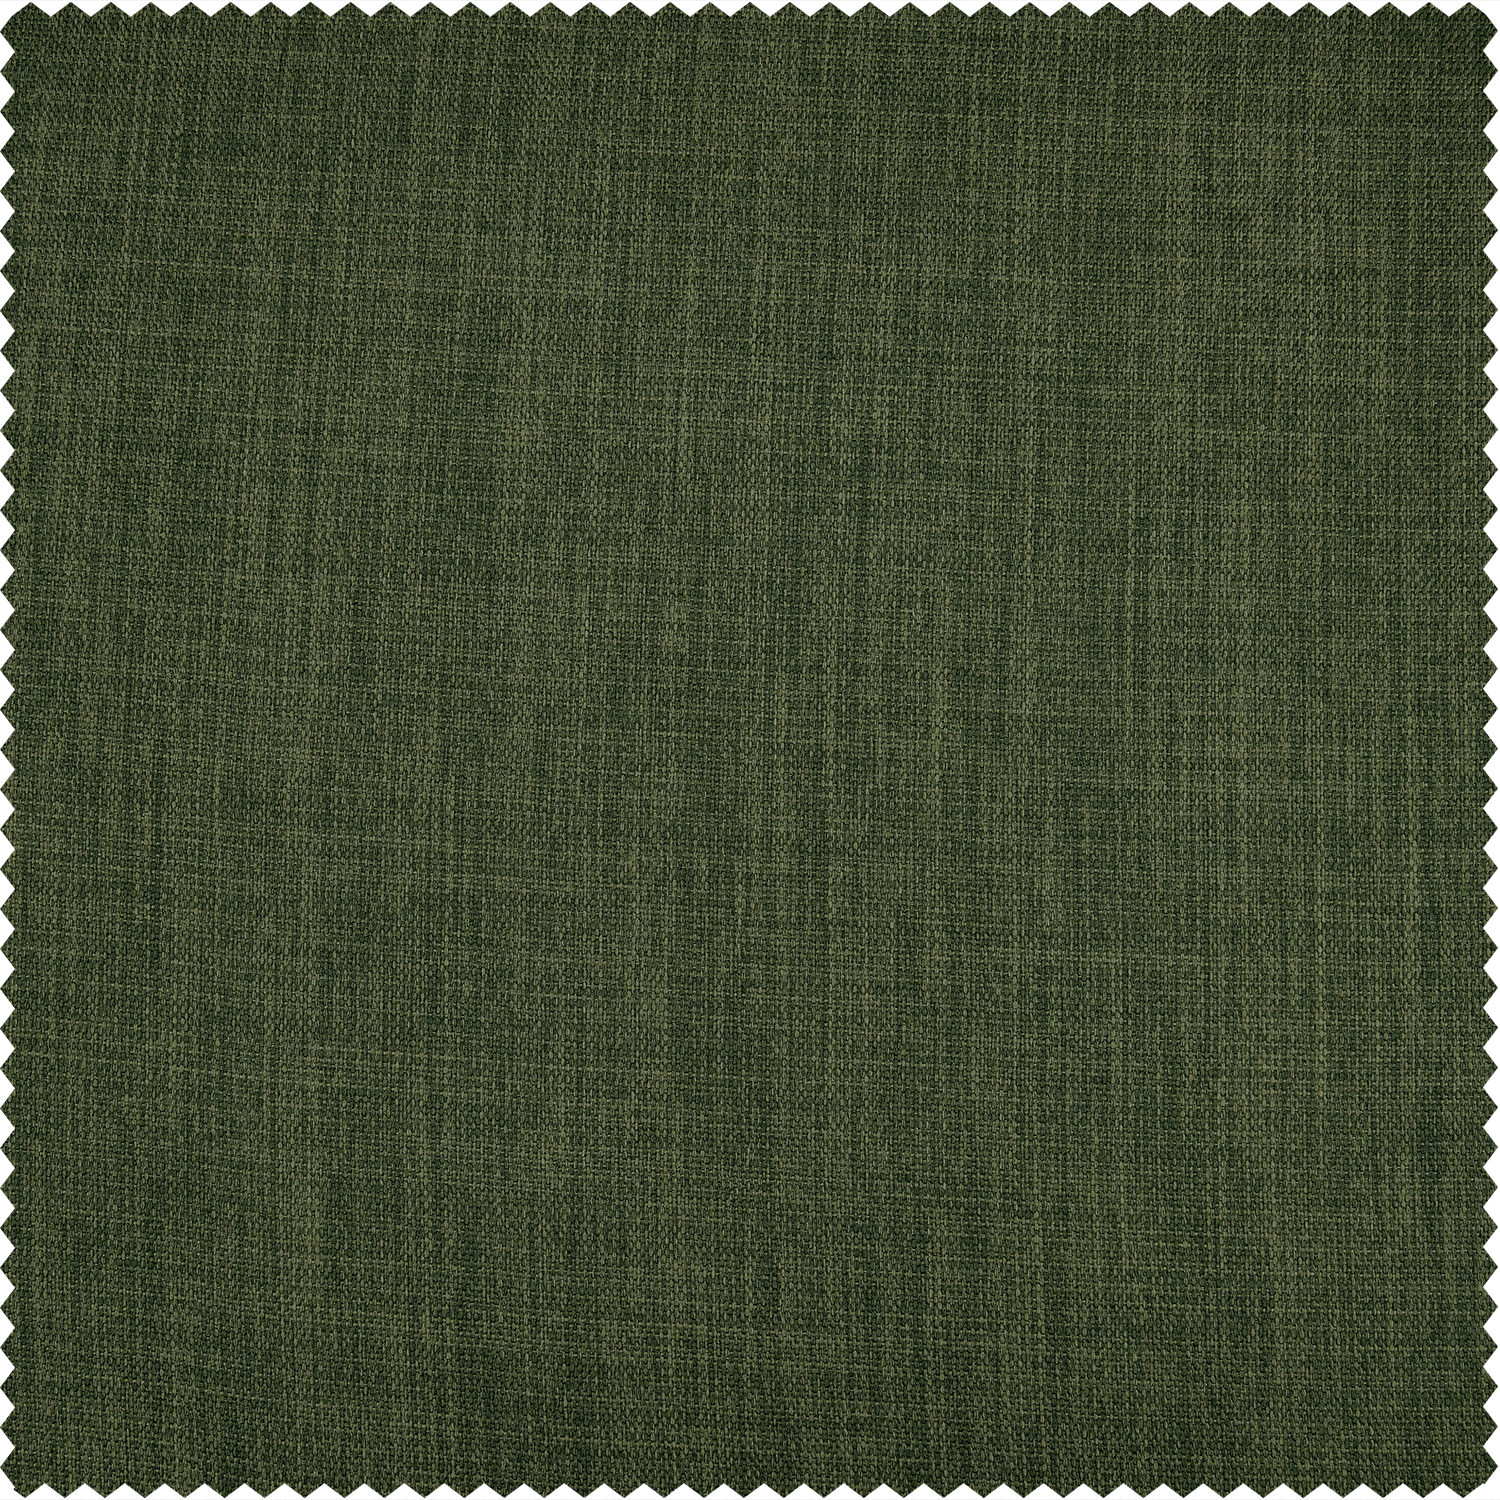 Tuscany Green Faux Linen Blackout Room Darkening Swatch